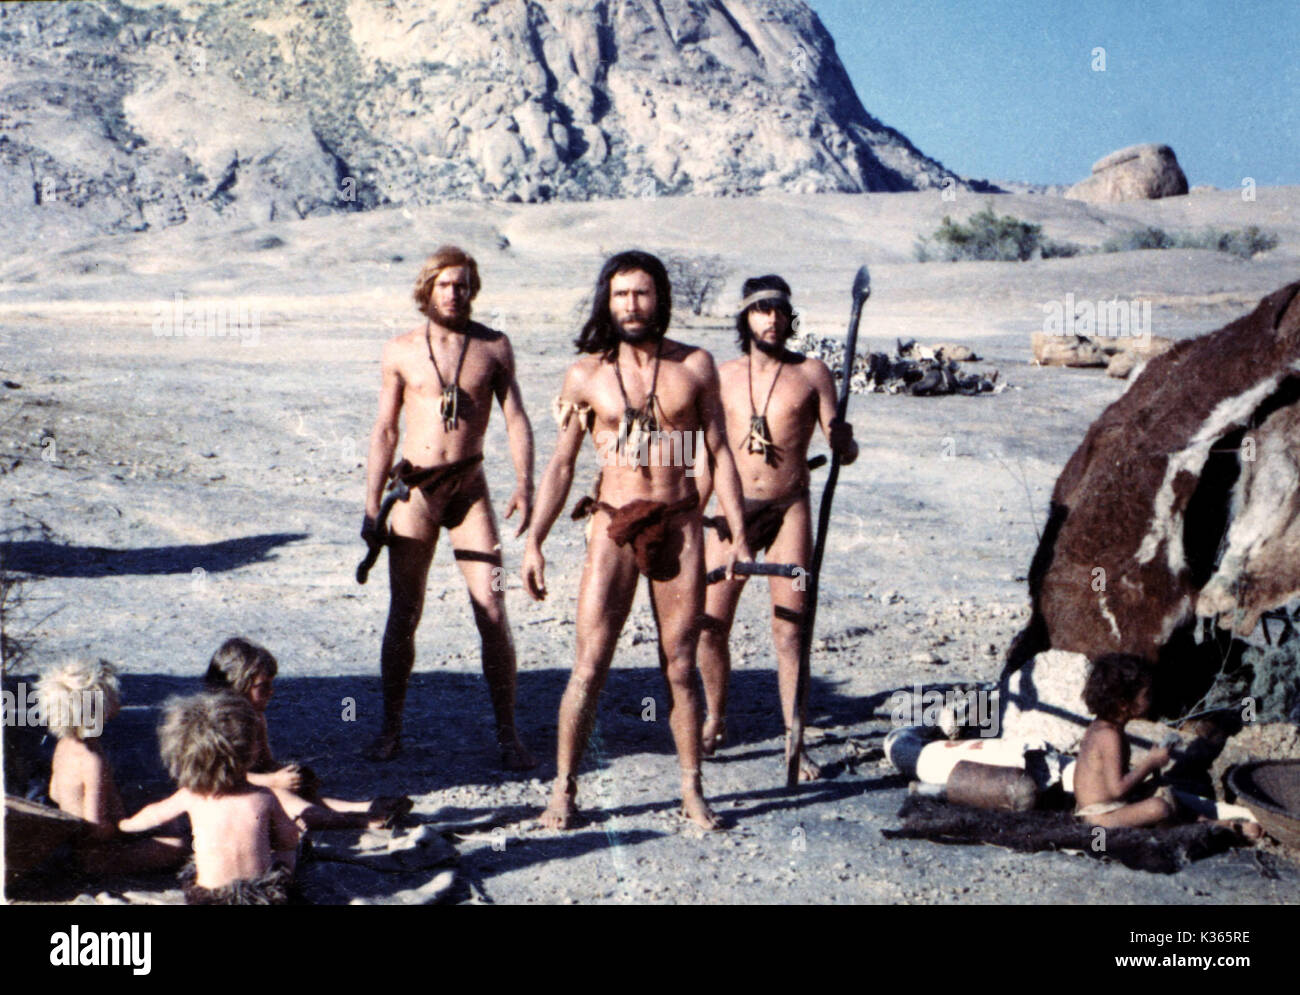 CREATURES THE WORLD FORGOT A HAMMER FILM PRODUCTION     Date: 1971 - Stock Image